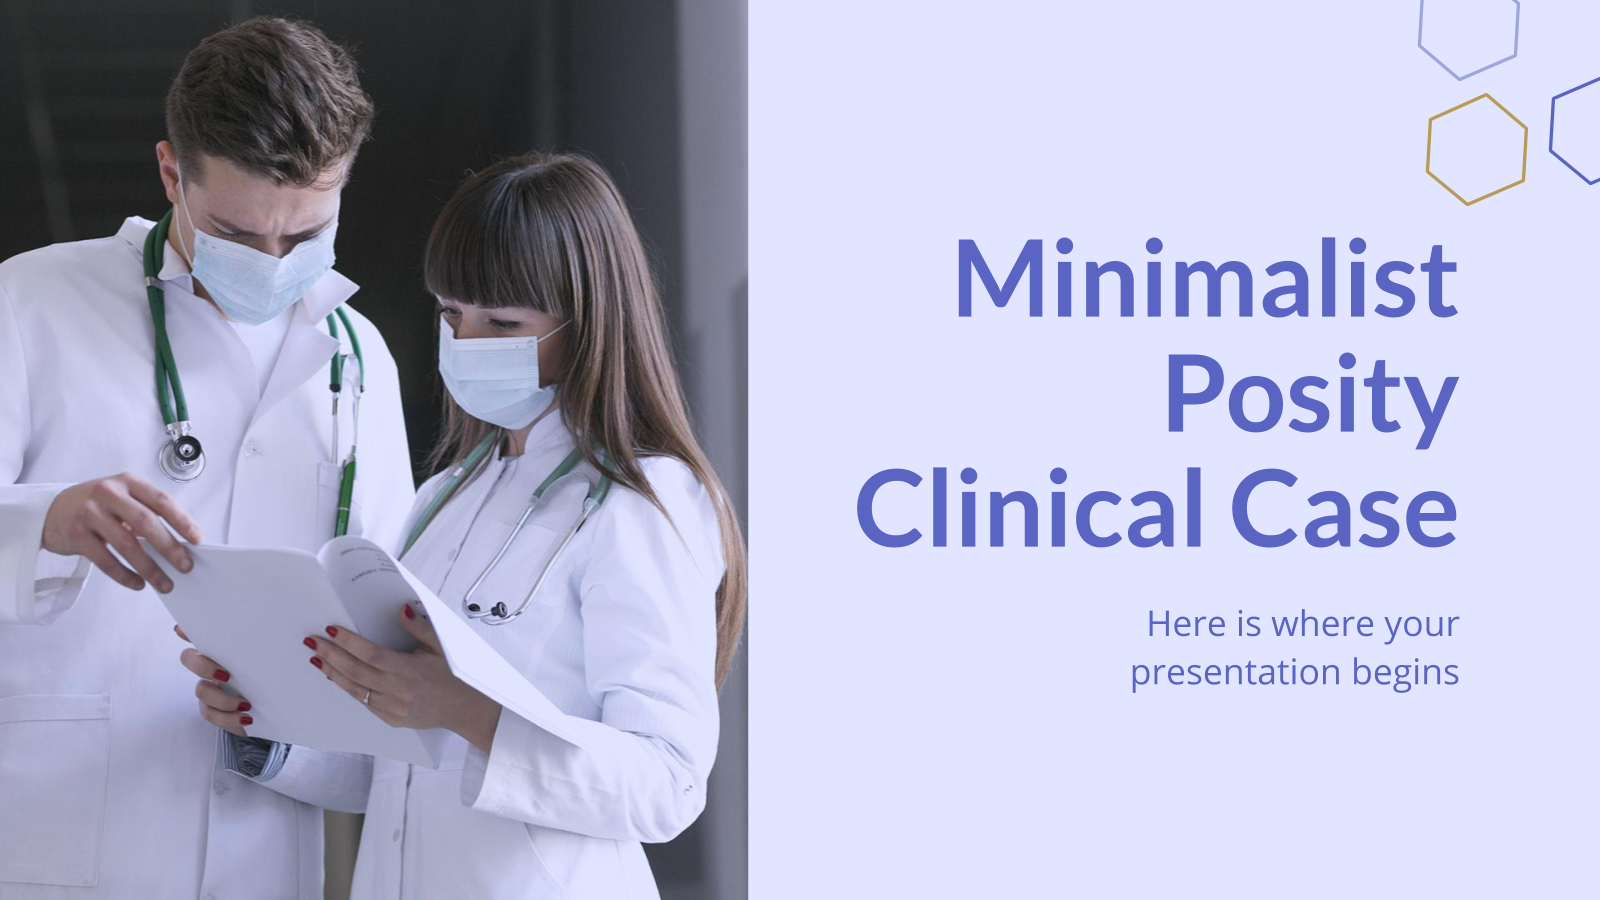 Minimalist Posity Clinical Case presentation template